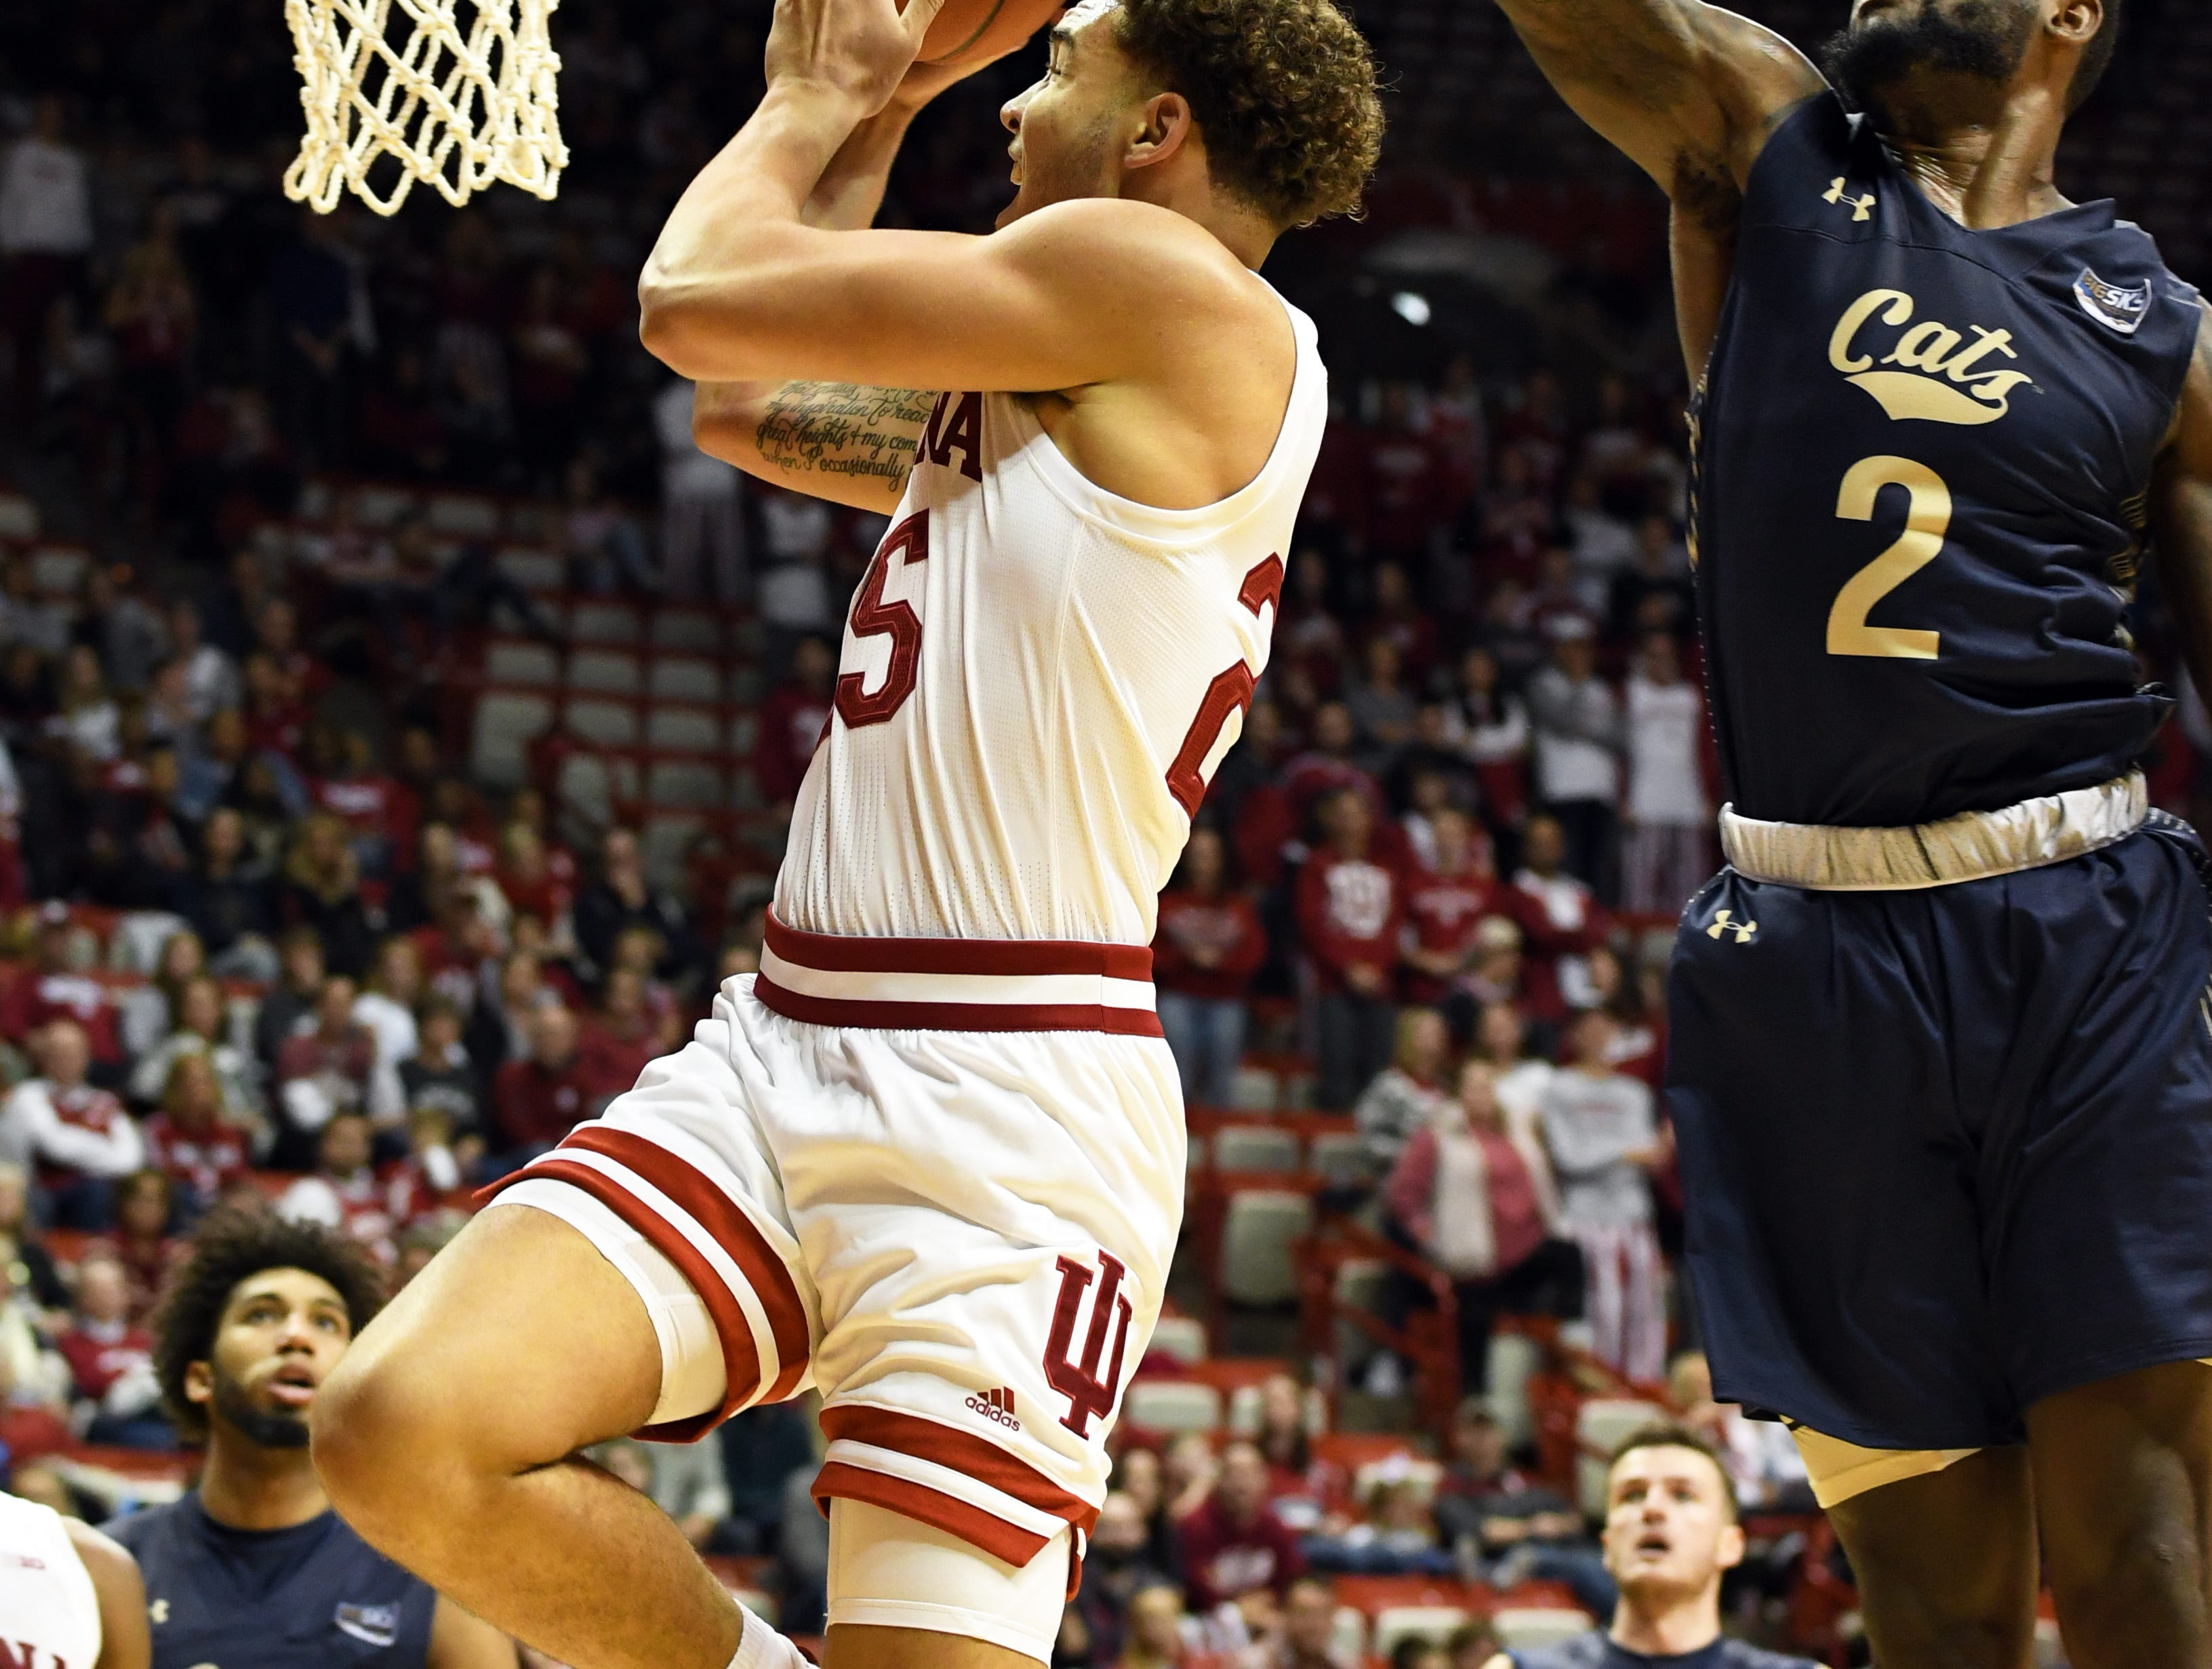 Indiana Hoosiers forward Race Thompson (25) goes to the basket during the game against Montana State at Simon Skjodt Assembly Hall in Bloomington, Ind., on Friday, Nov. 9, 2018.